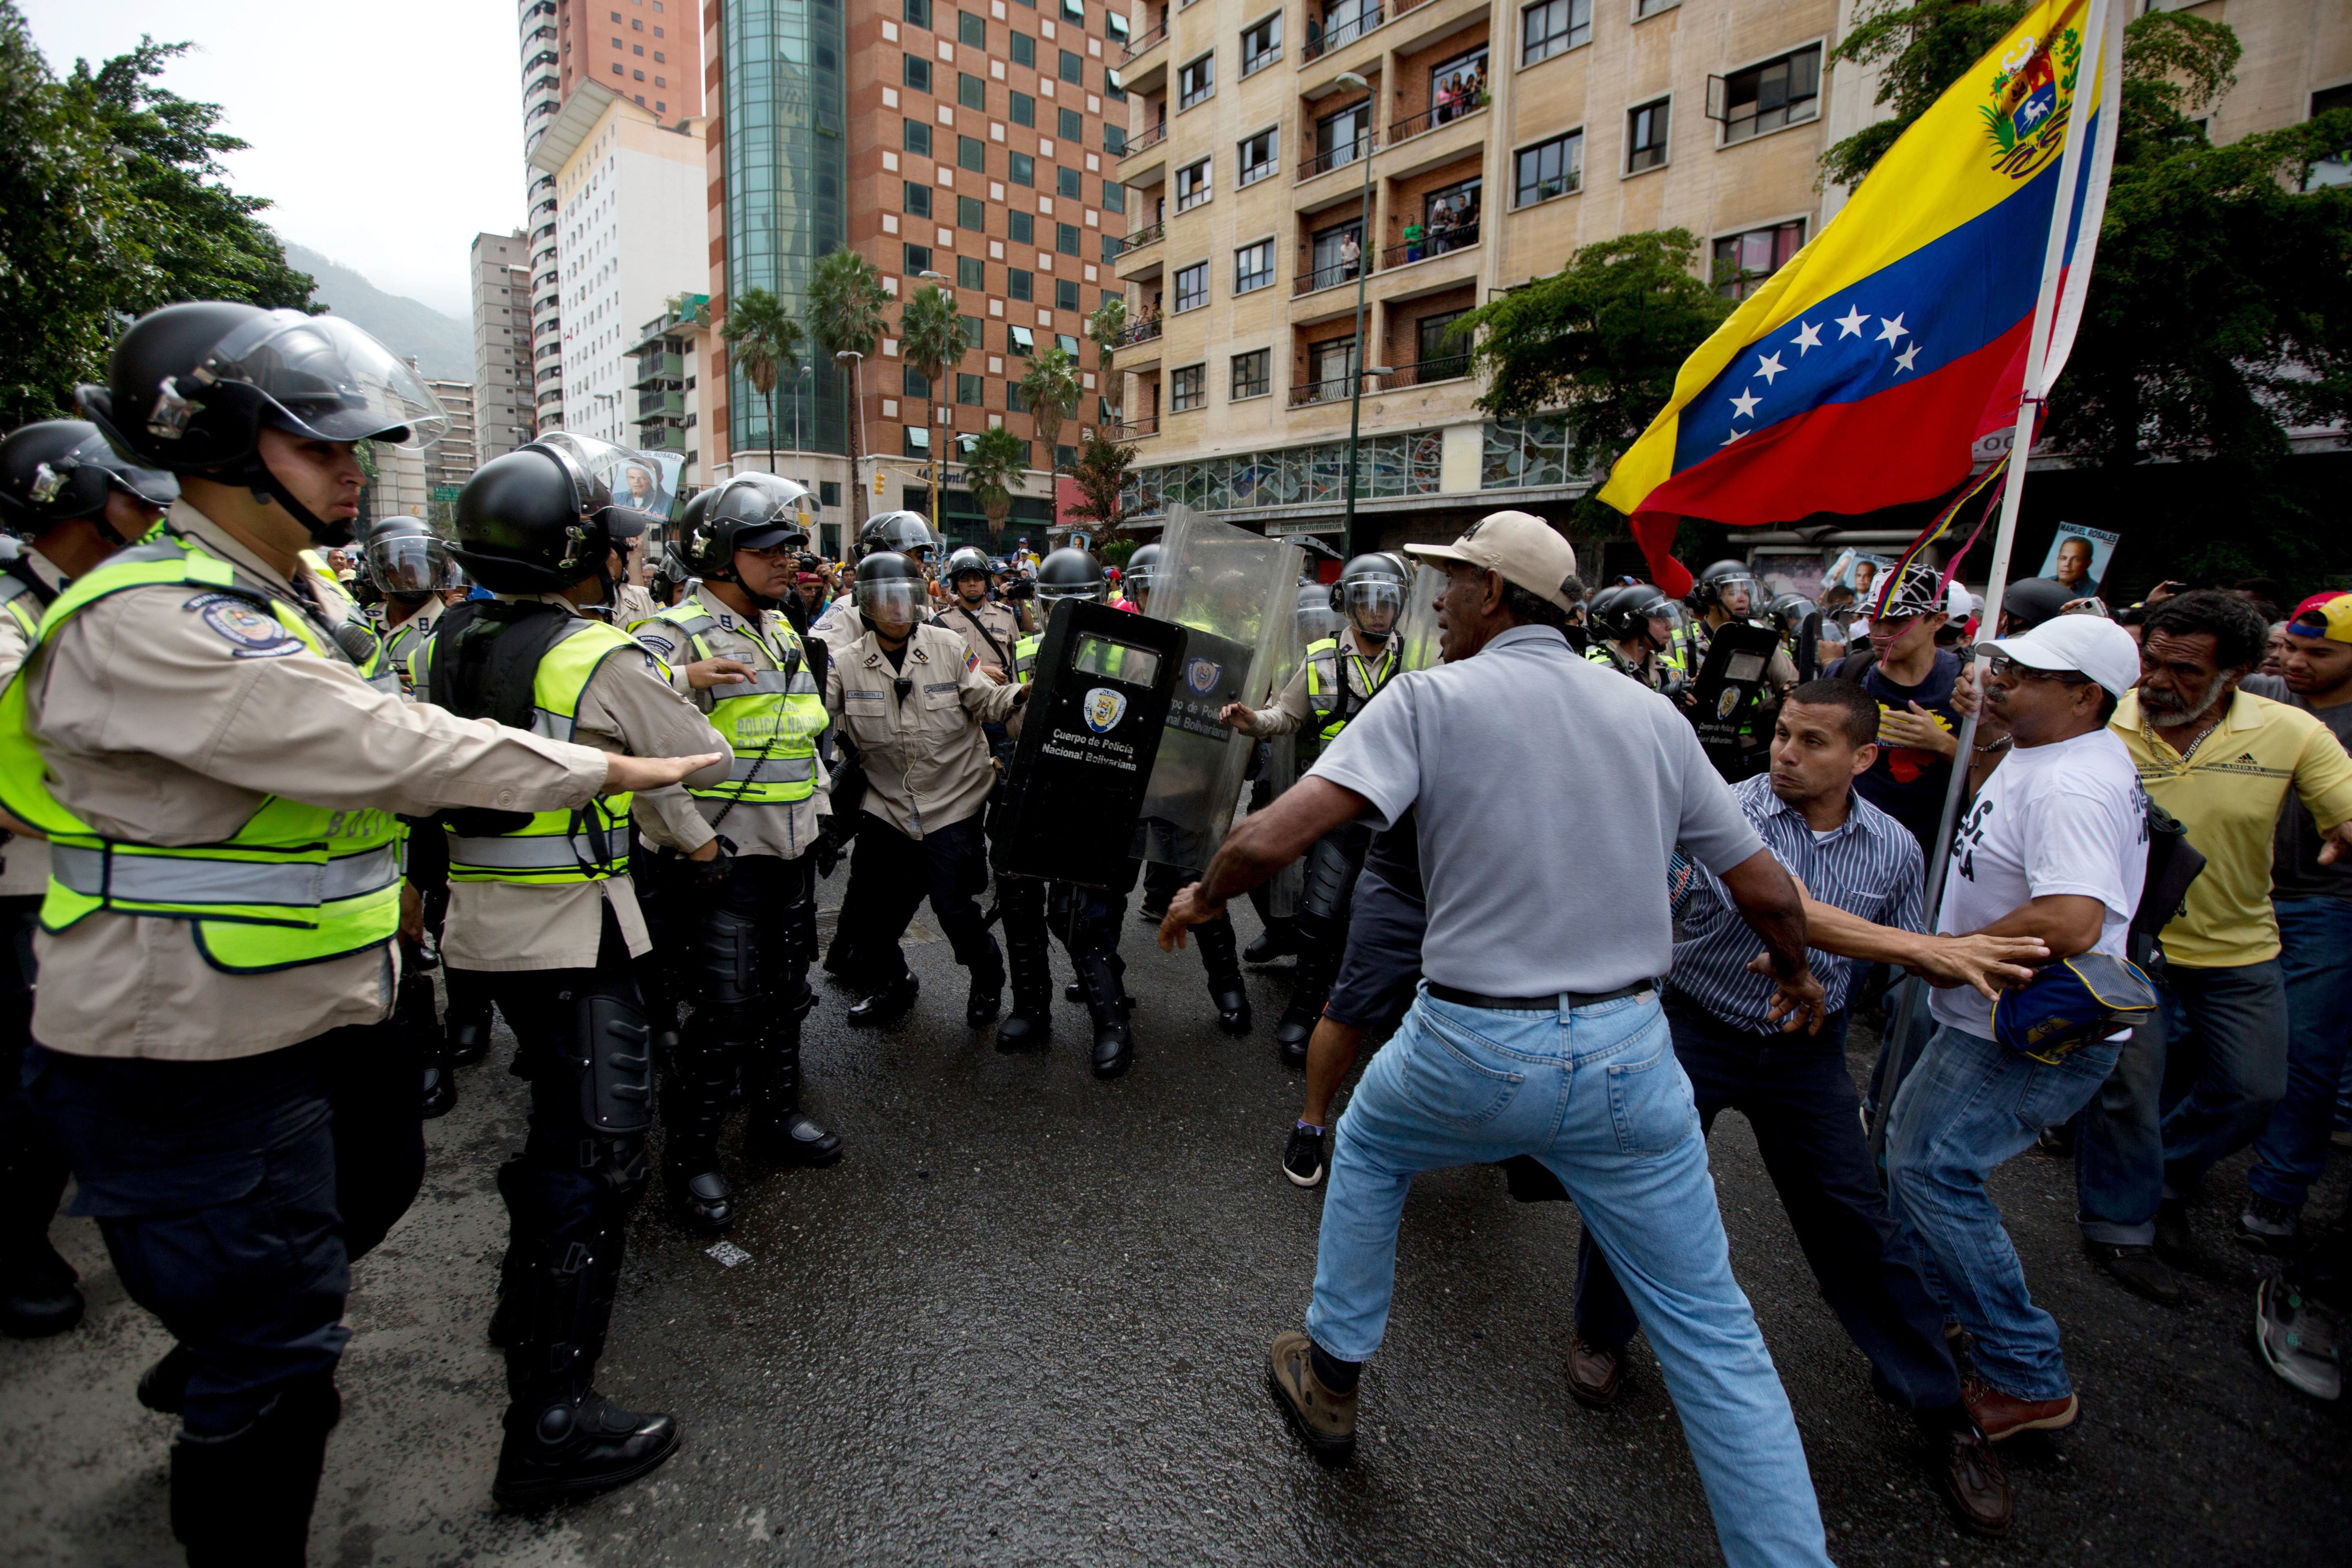 Anti-government demonstrators try to break through a barrier of Bolivarian National Police in an